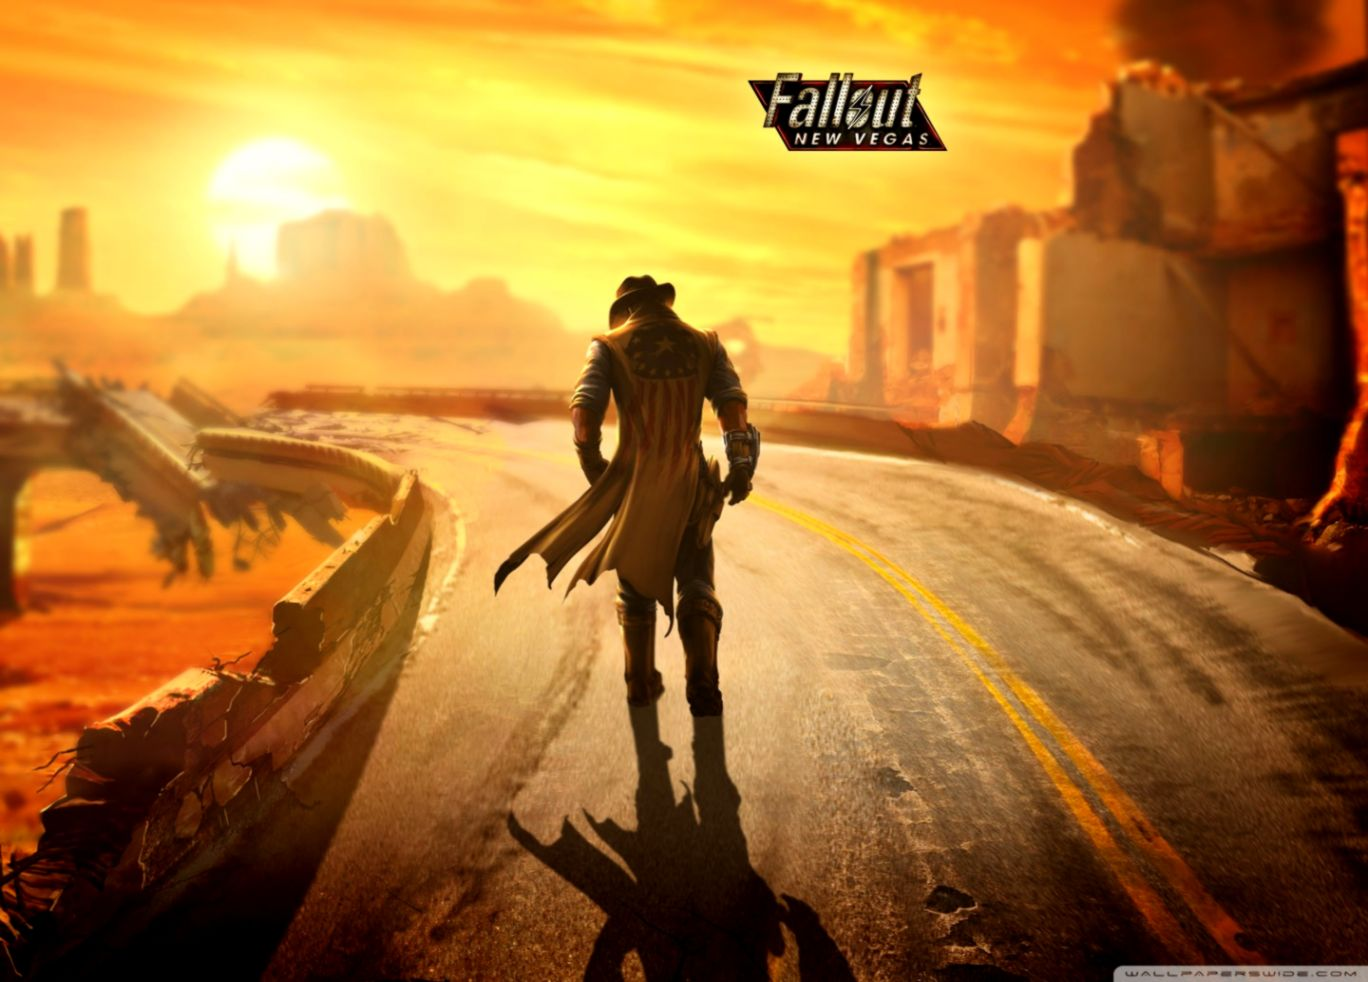 Fallout New Vegas Wallpaper Image Wallpapers